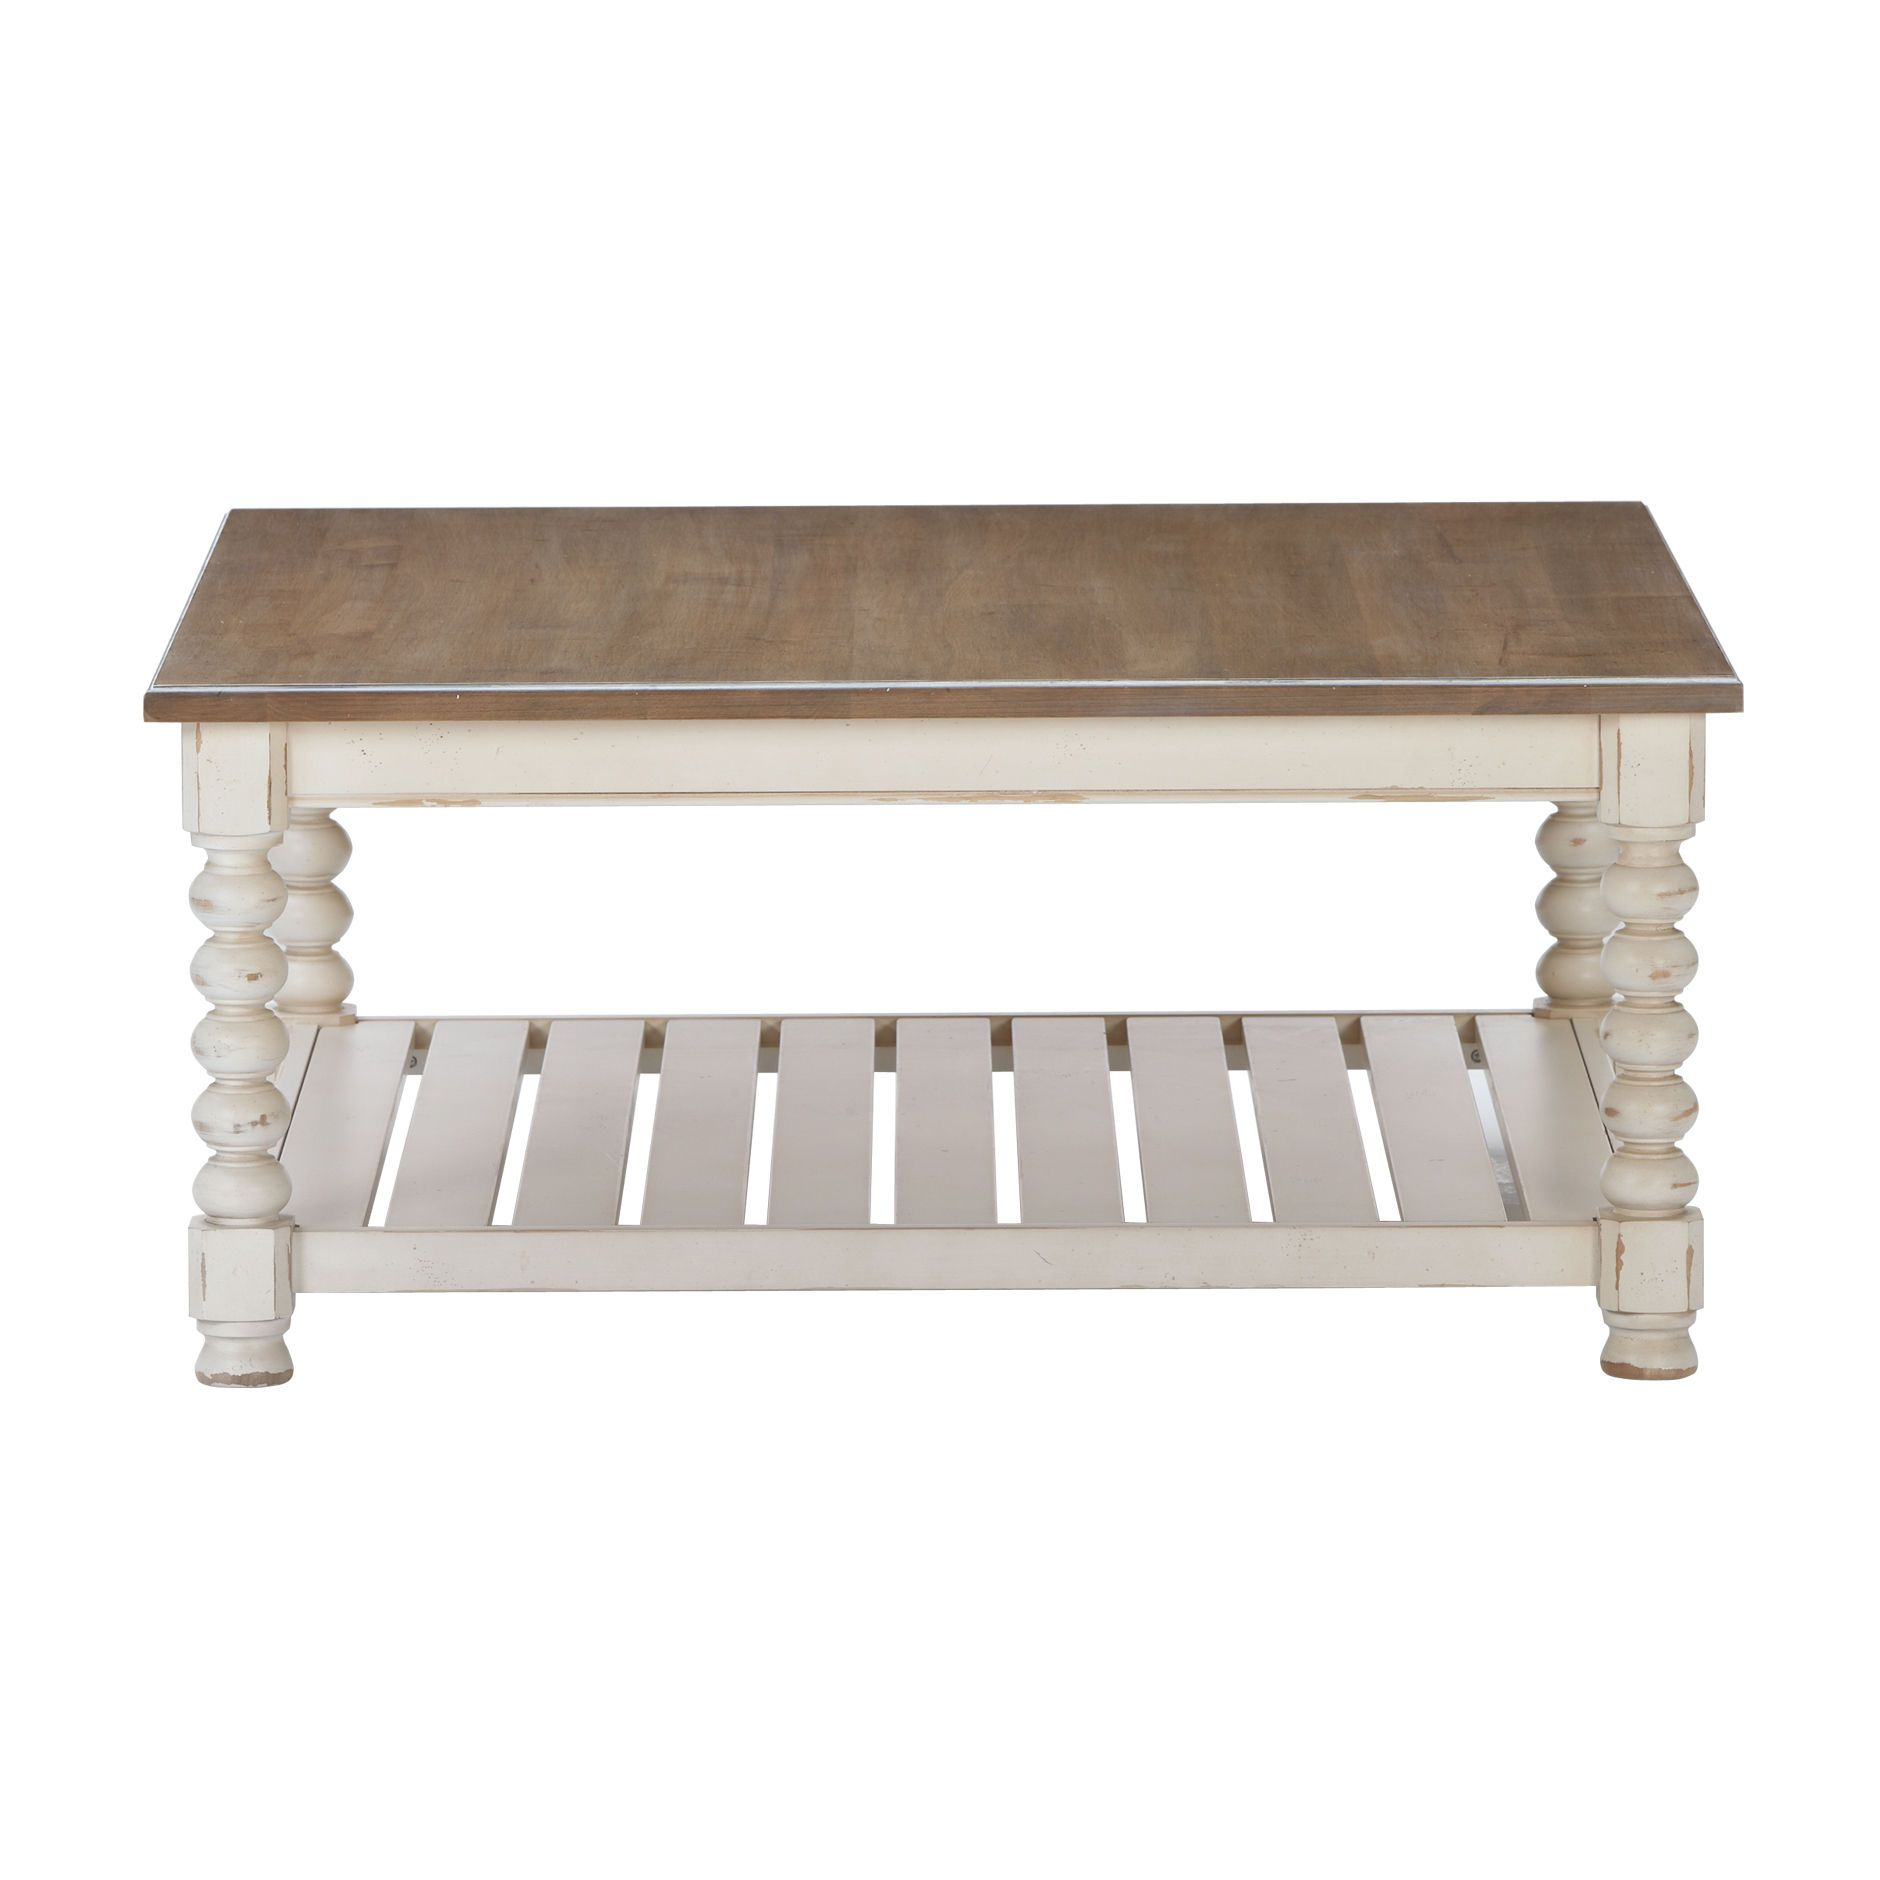 Ethan Allen Henry Coffee Table With Drawers: Mansfield Square Coffee Table